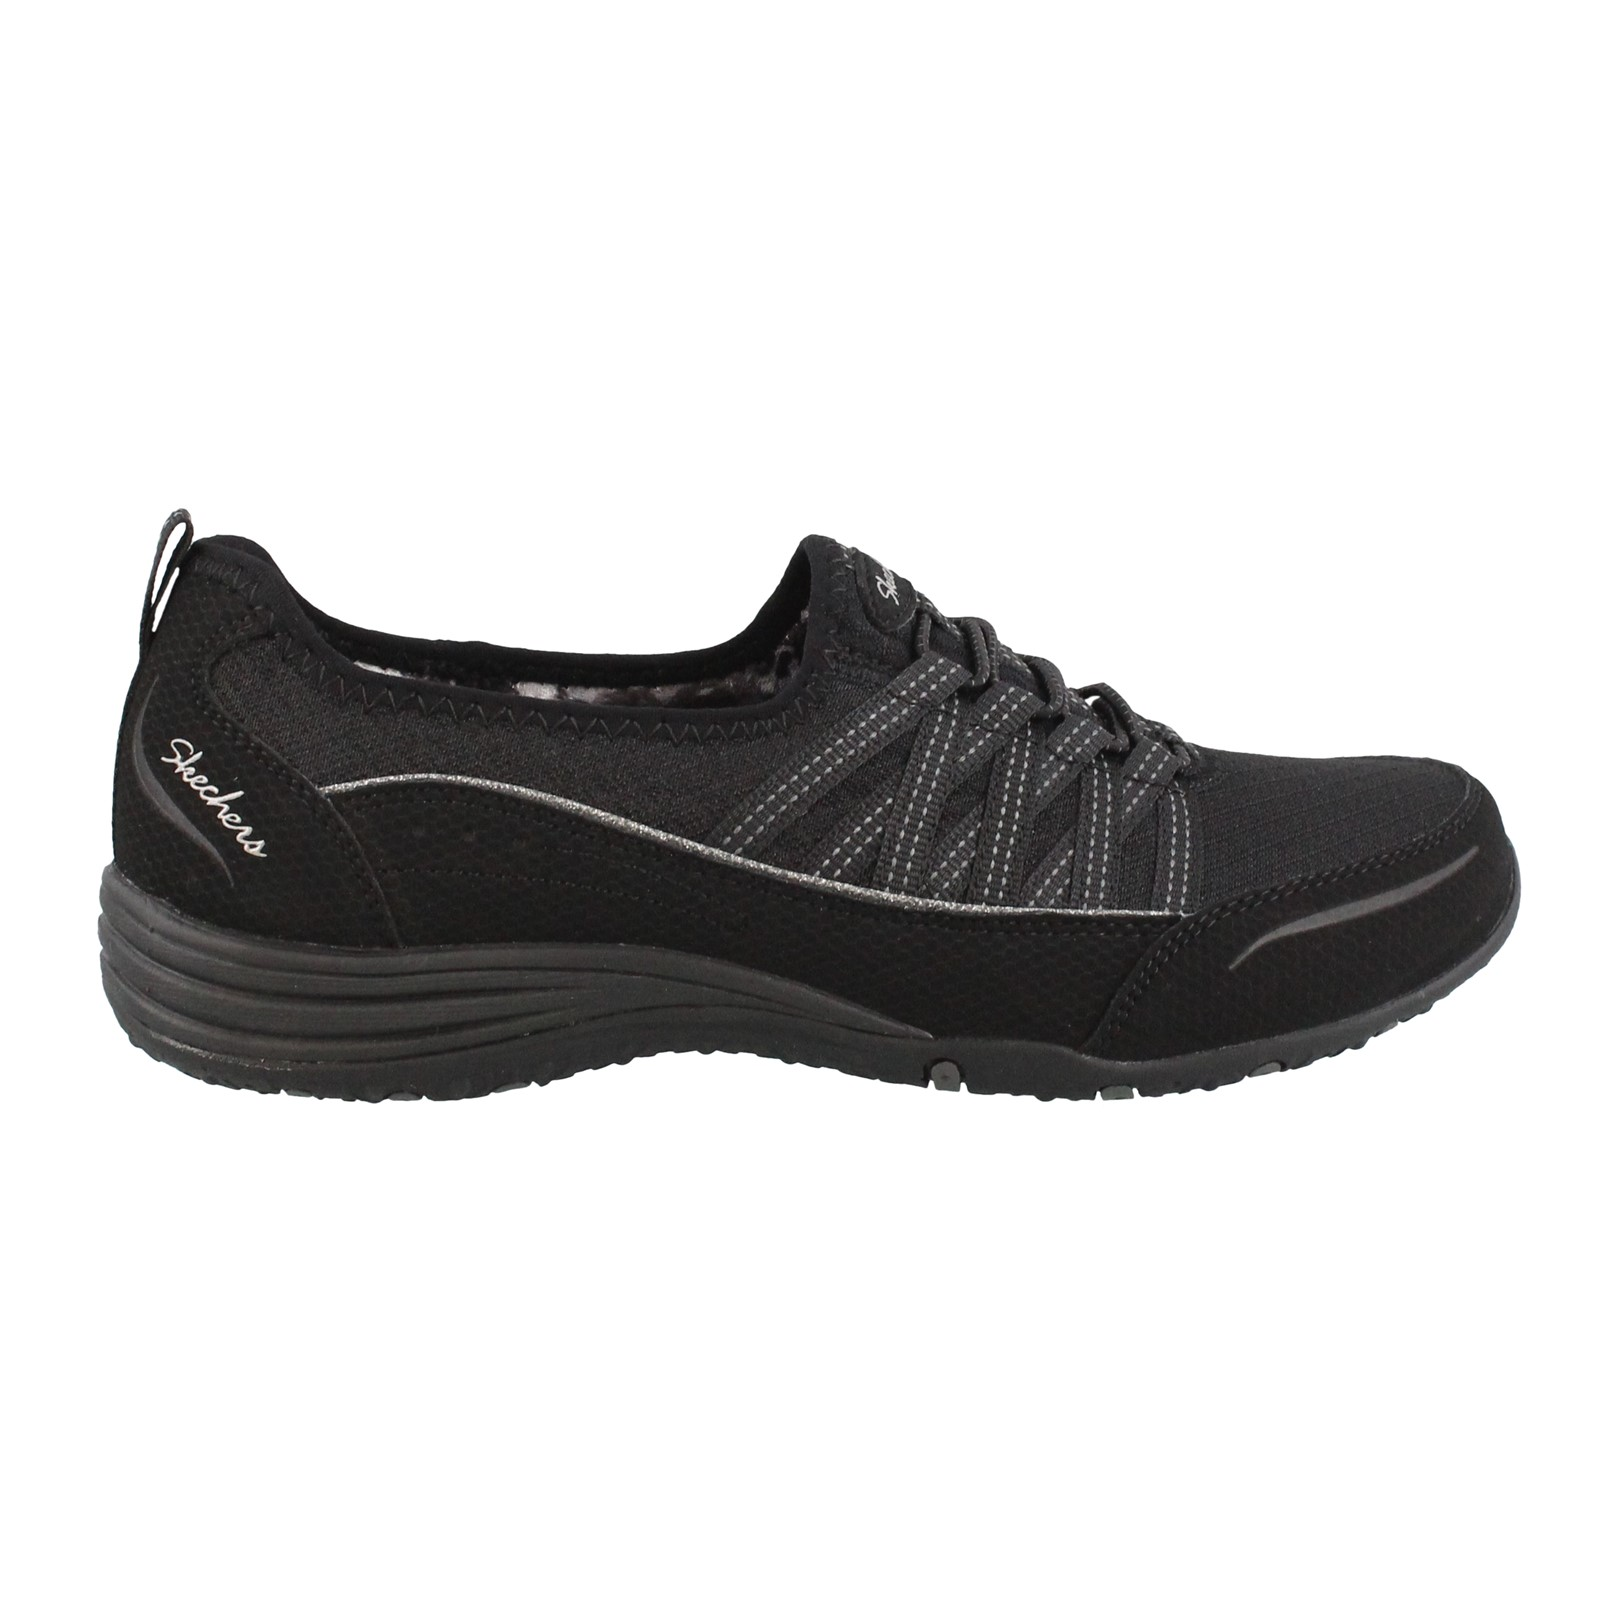 Women's Skechers, Unity Go Big Slip on Shoes